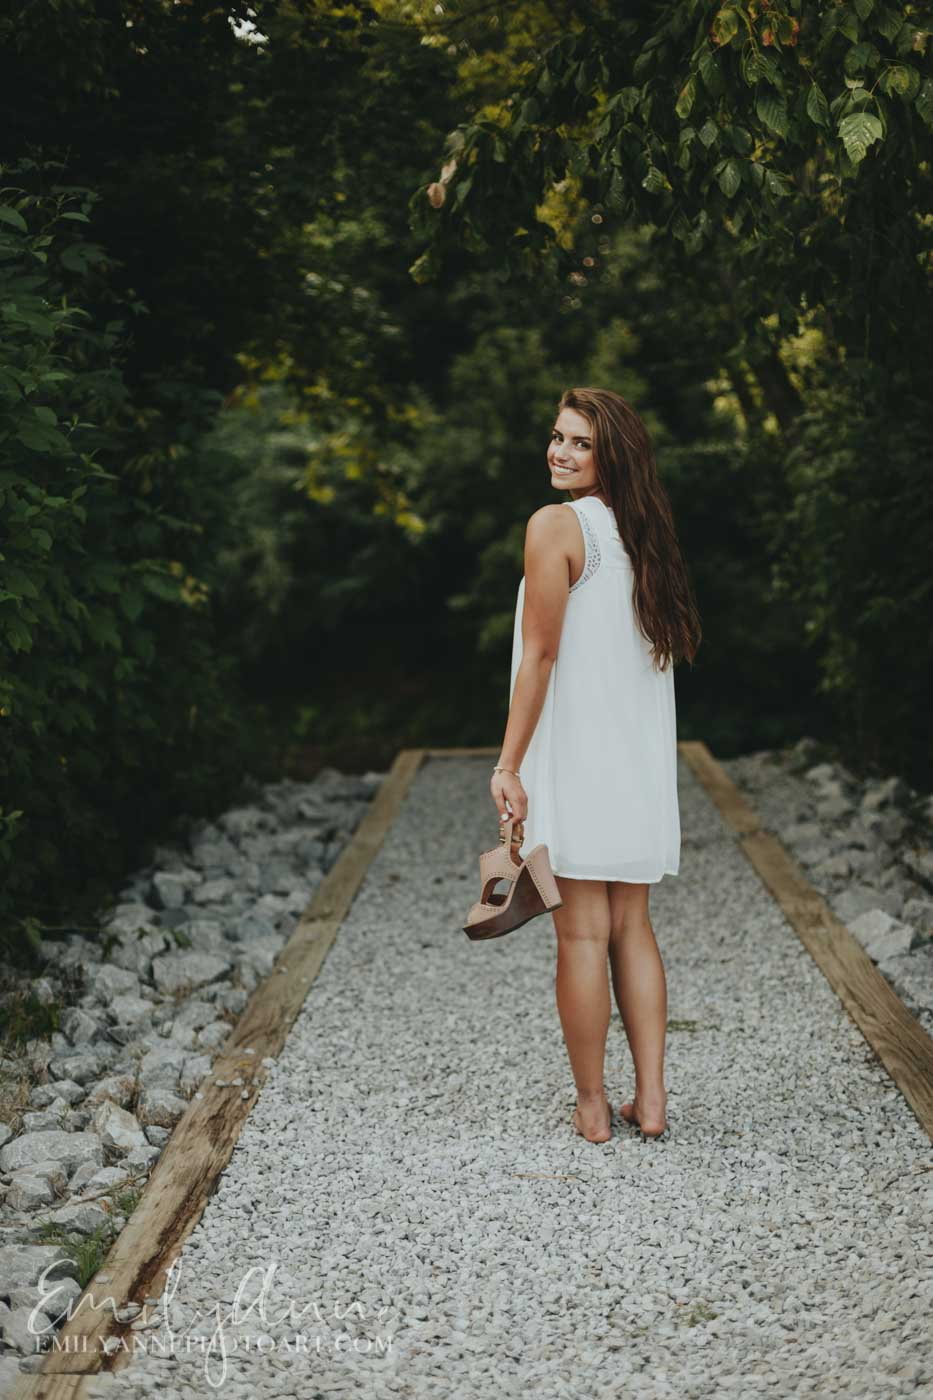 gorgeous outdoors senior portraits at Pinkerton park in Franklin tn by Emily Anne Photo Art (photography)  going into a creek Nashville TN